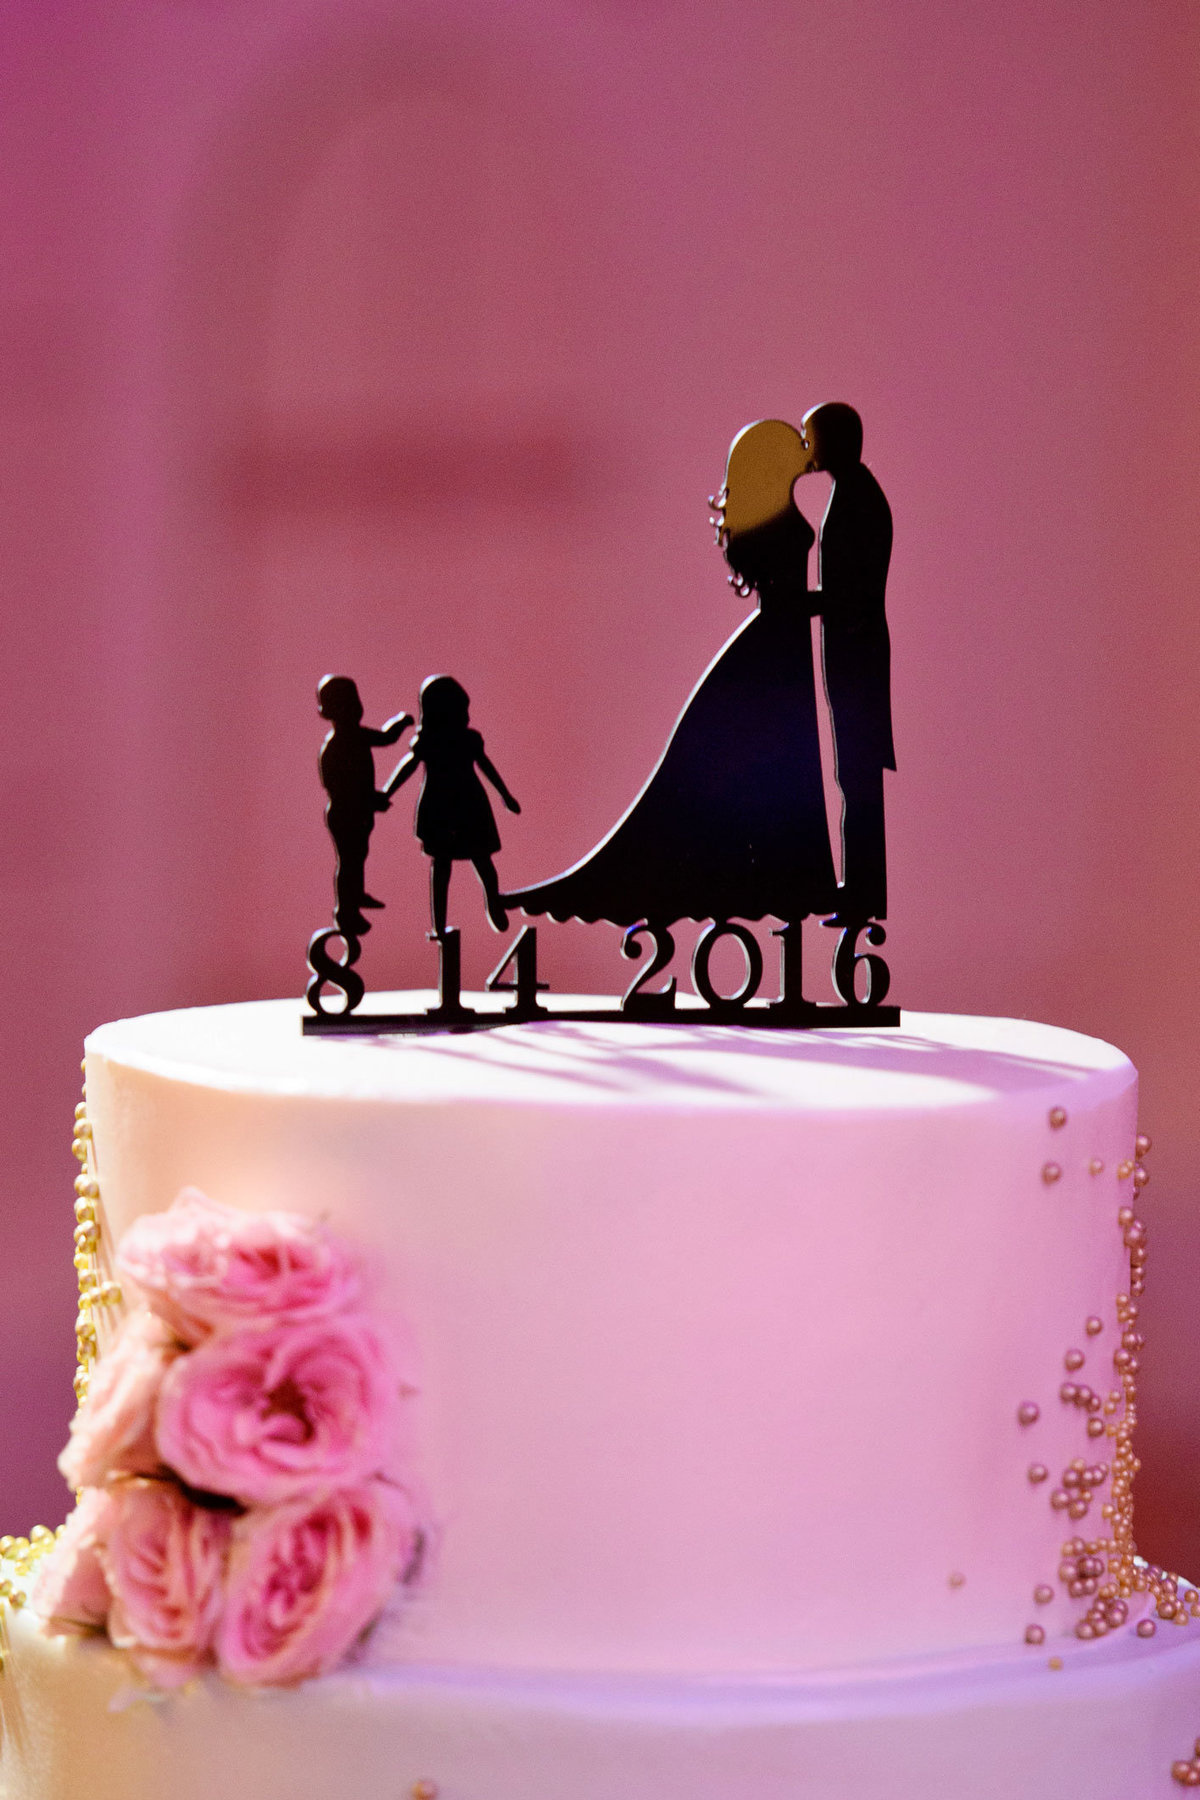 Wedding cake topper with date at The Sands